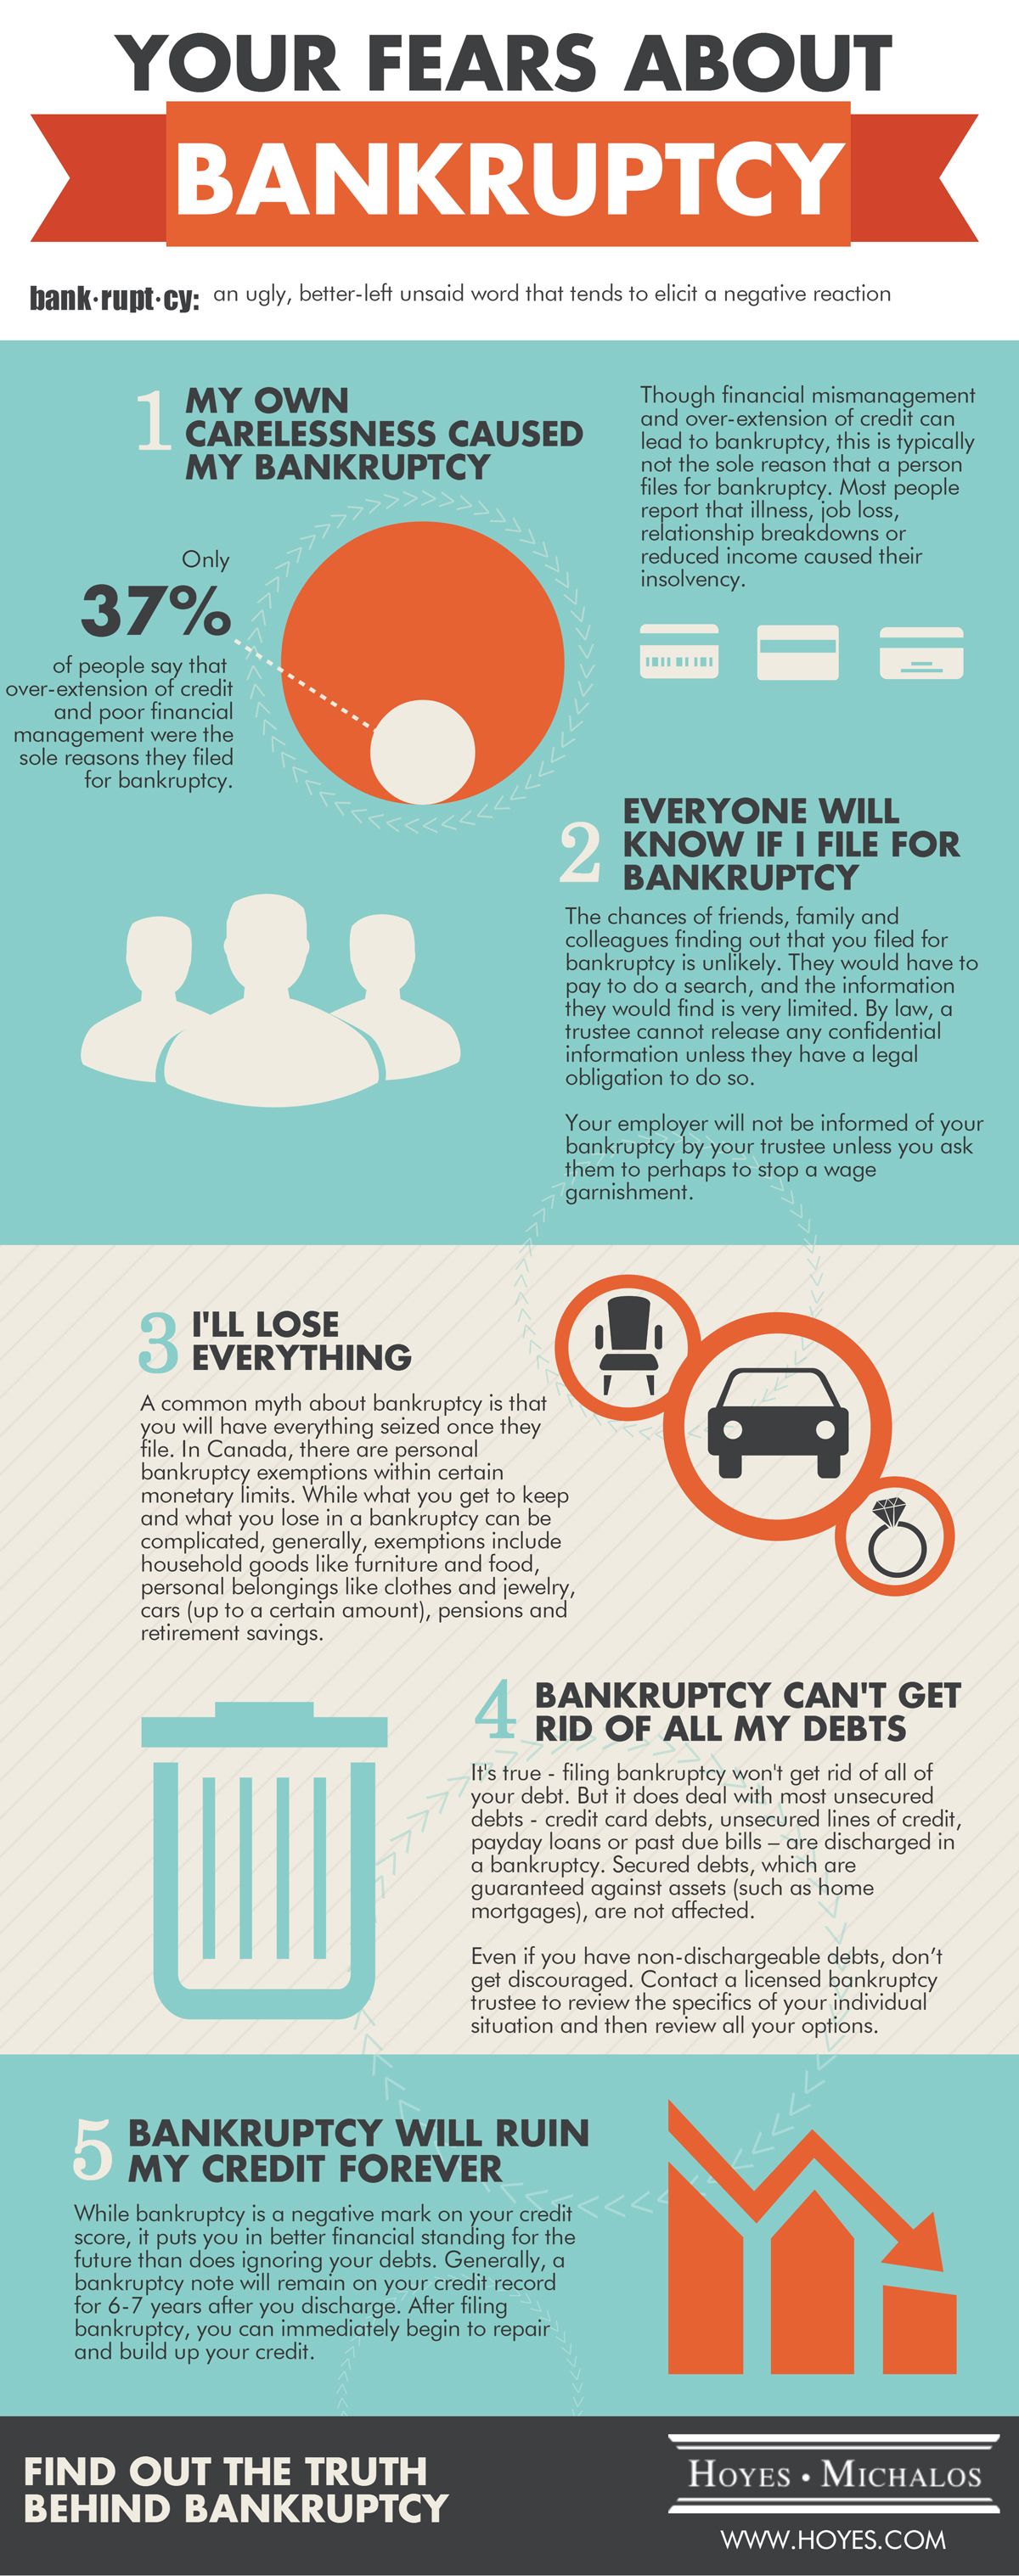 common fears of bankruptcy